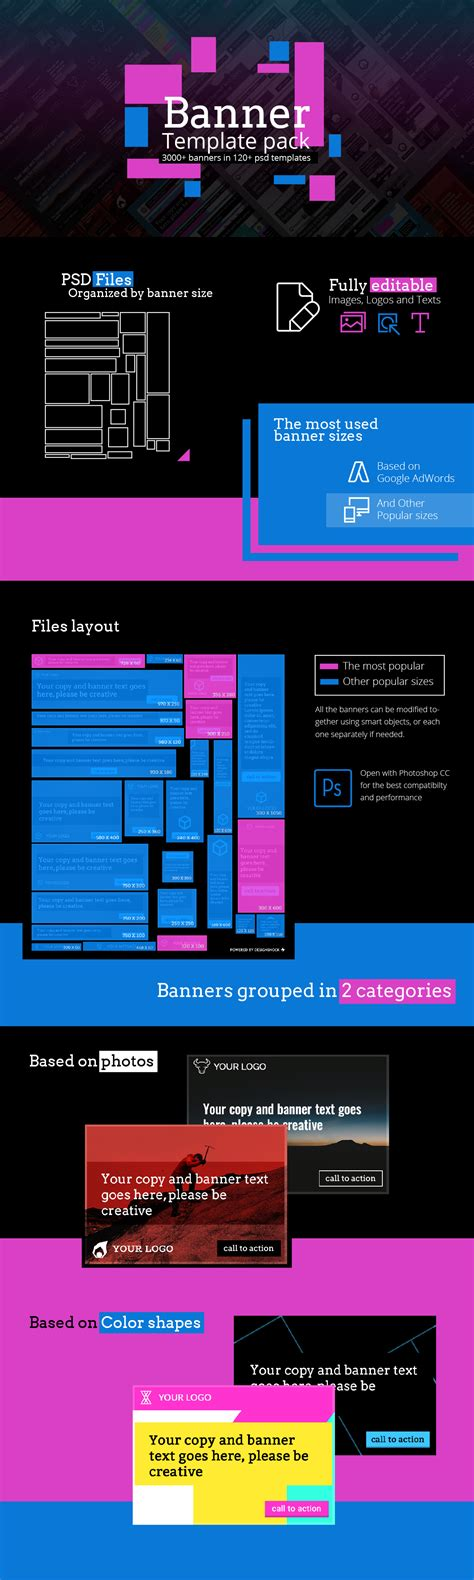 Banner Template Generator Pack Design Shock Banner Template Maker